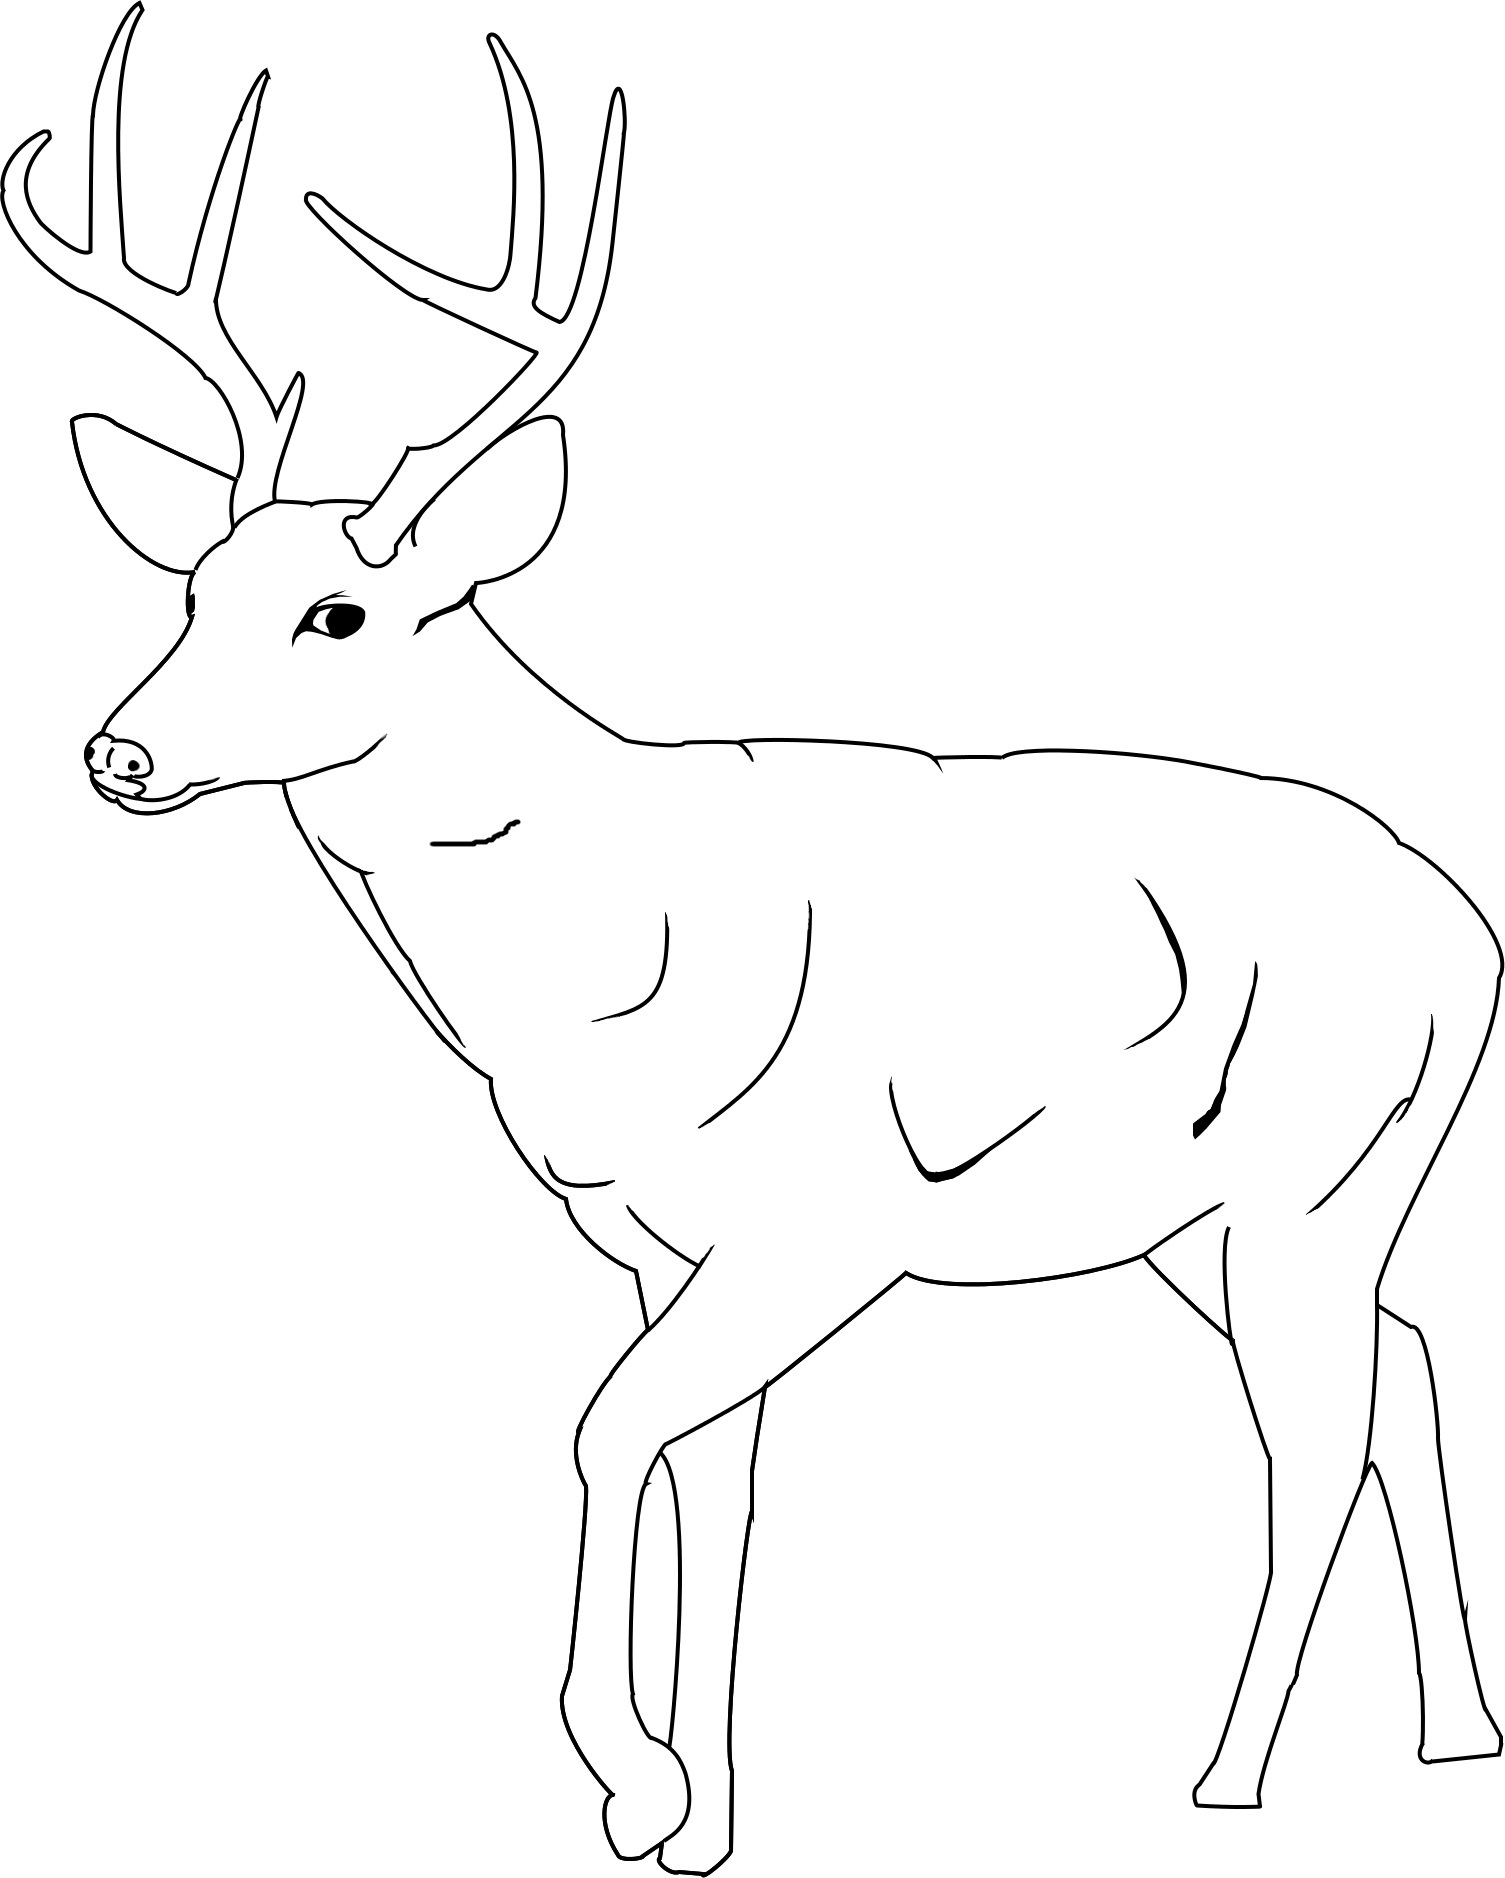 deer coloring pages - photo#32